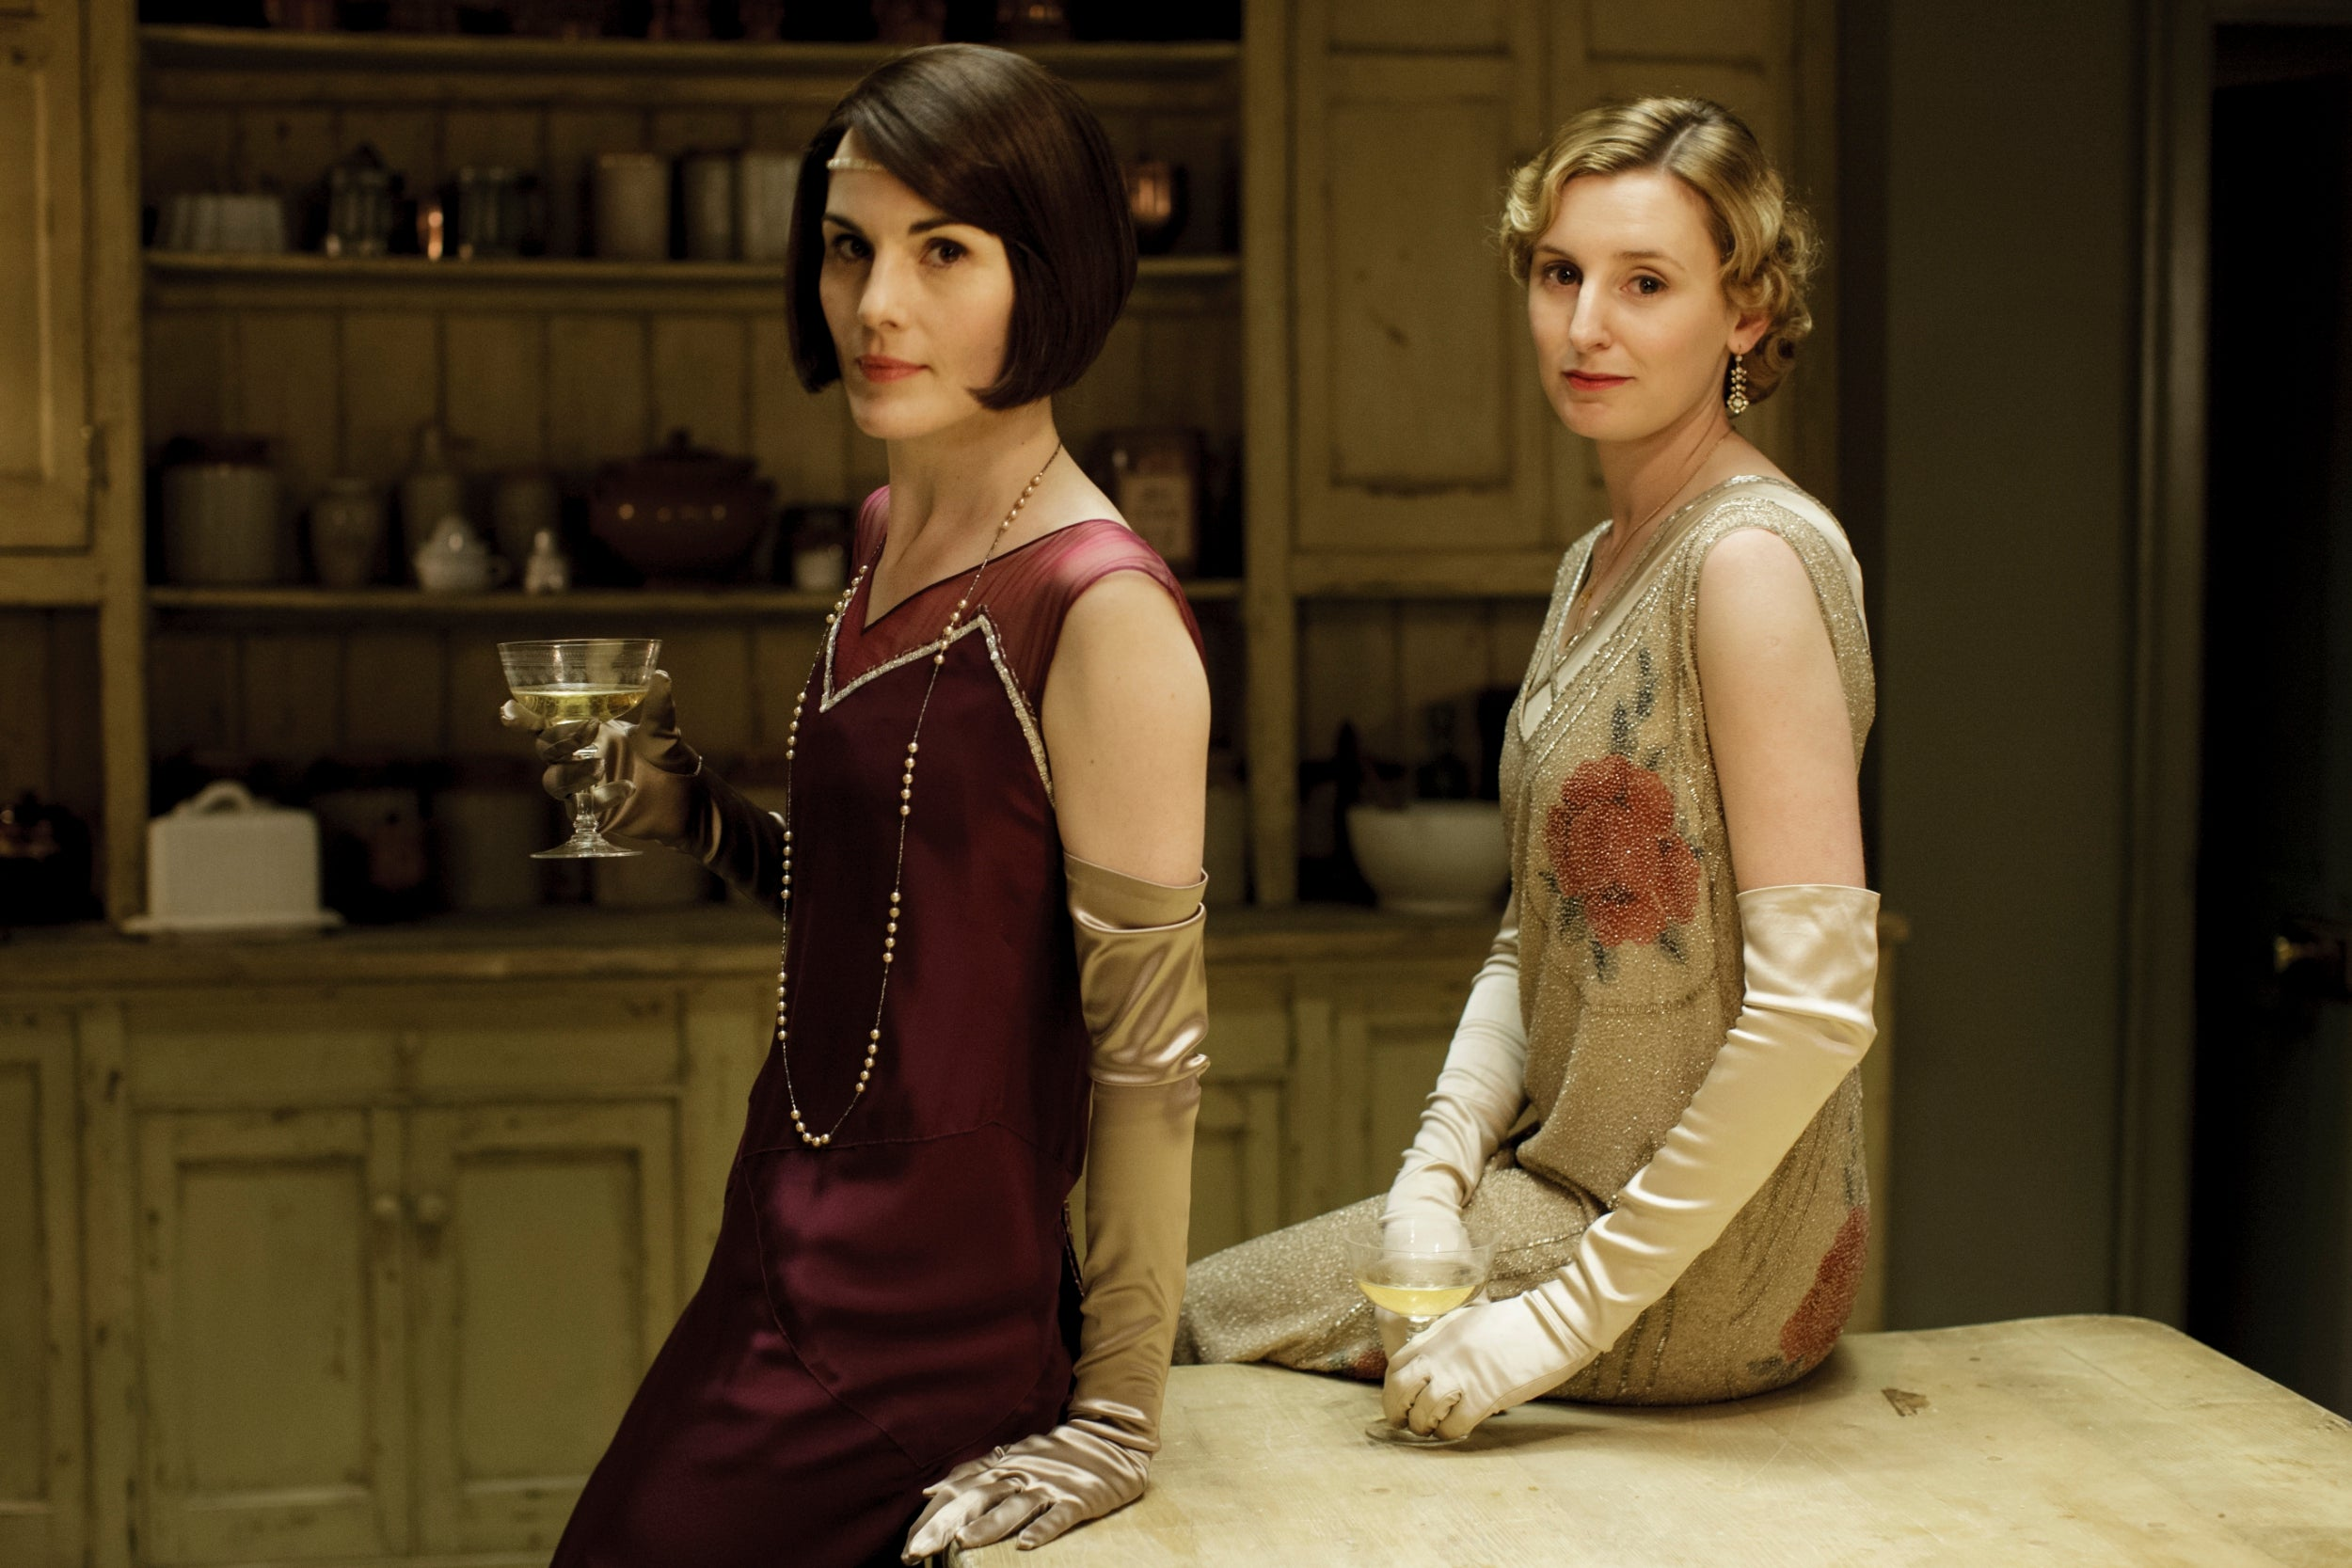 downtonabbeyseries1508--50.jpg